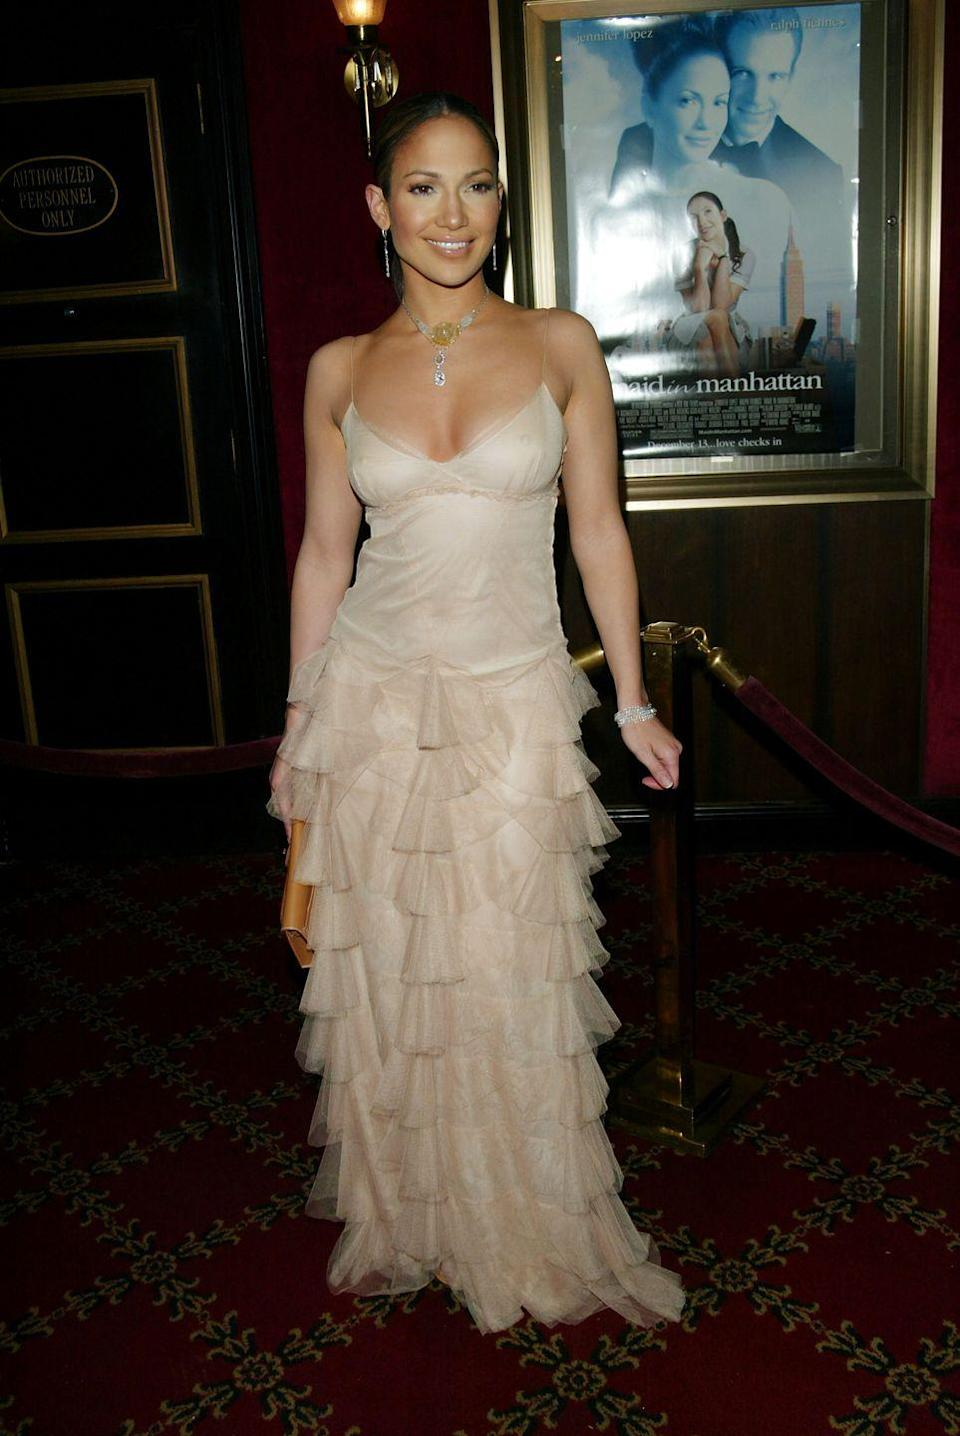 <p><strong>When: </strong>December 2002</p><p><strong>Where: </strong>Maid In Manhattan premiere</p><p><strong>Wearing: </strong>Vera Wang</p>